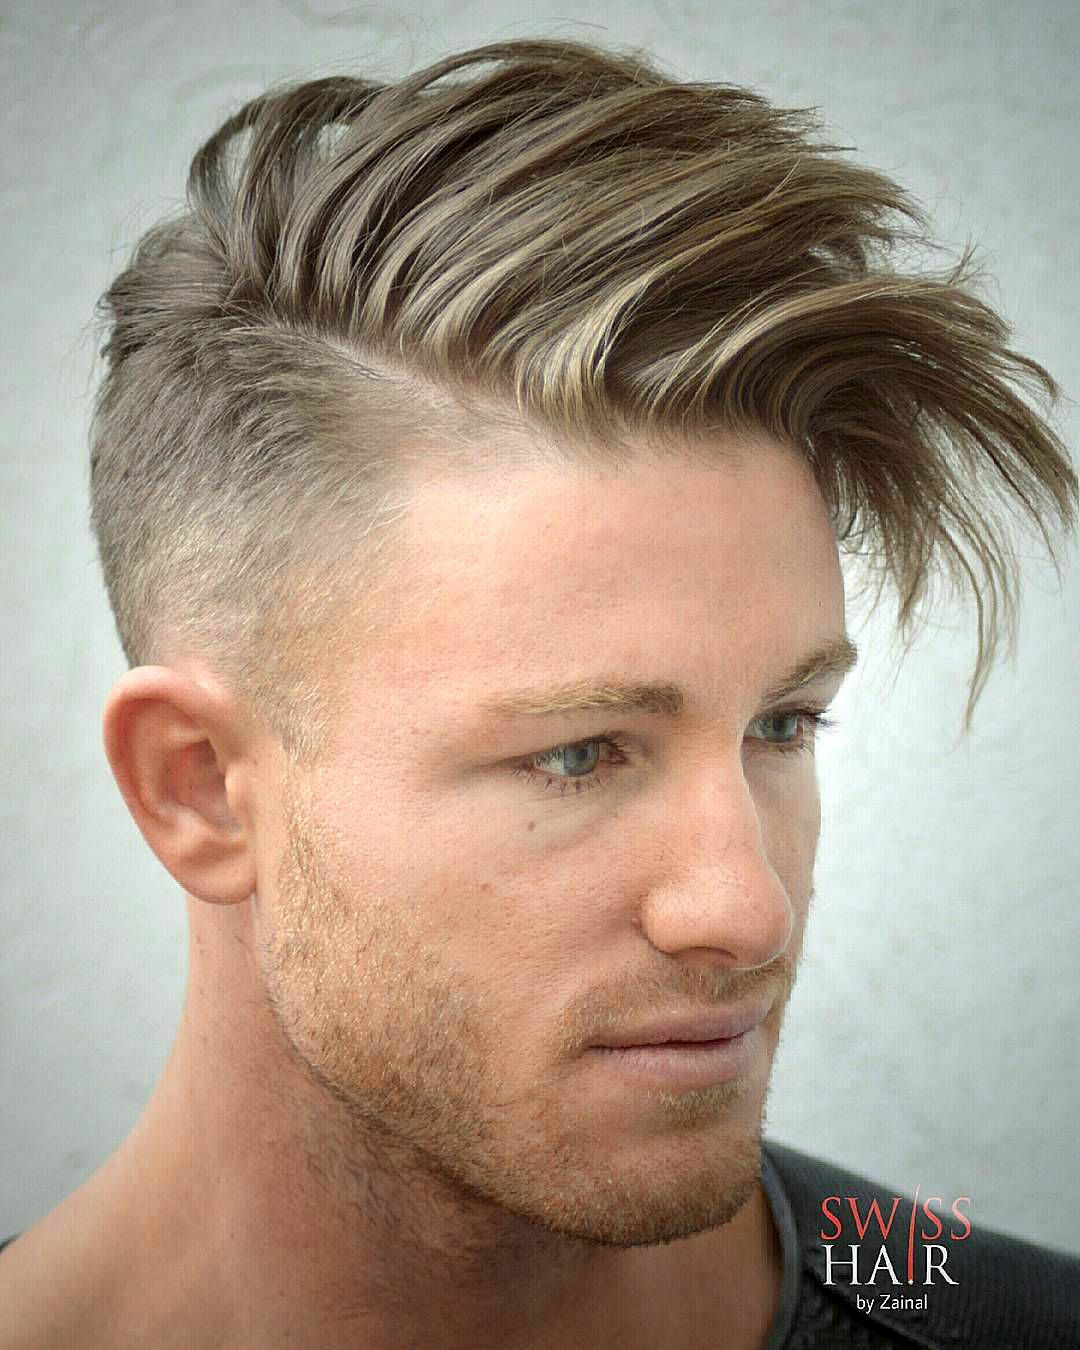 Remarkable 1000 Images About Hair Bear Style On Pinterest Short Hairstyles Gunalazisus